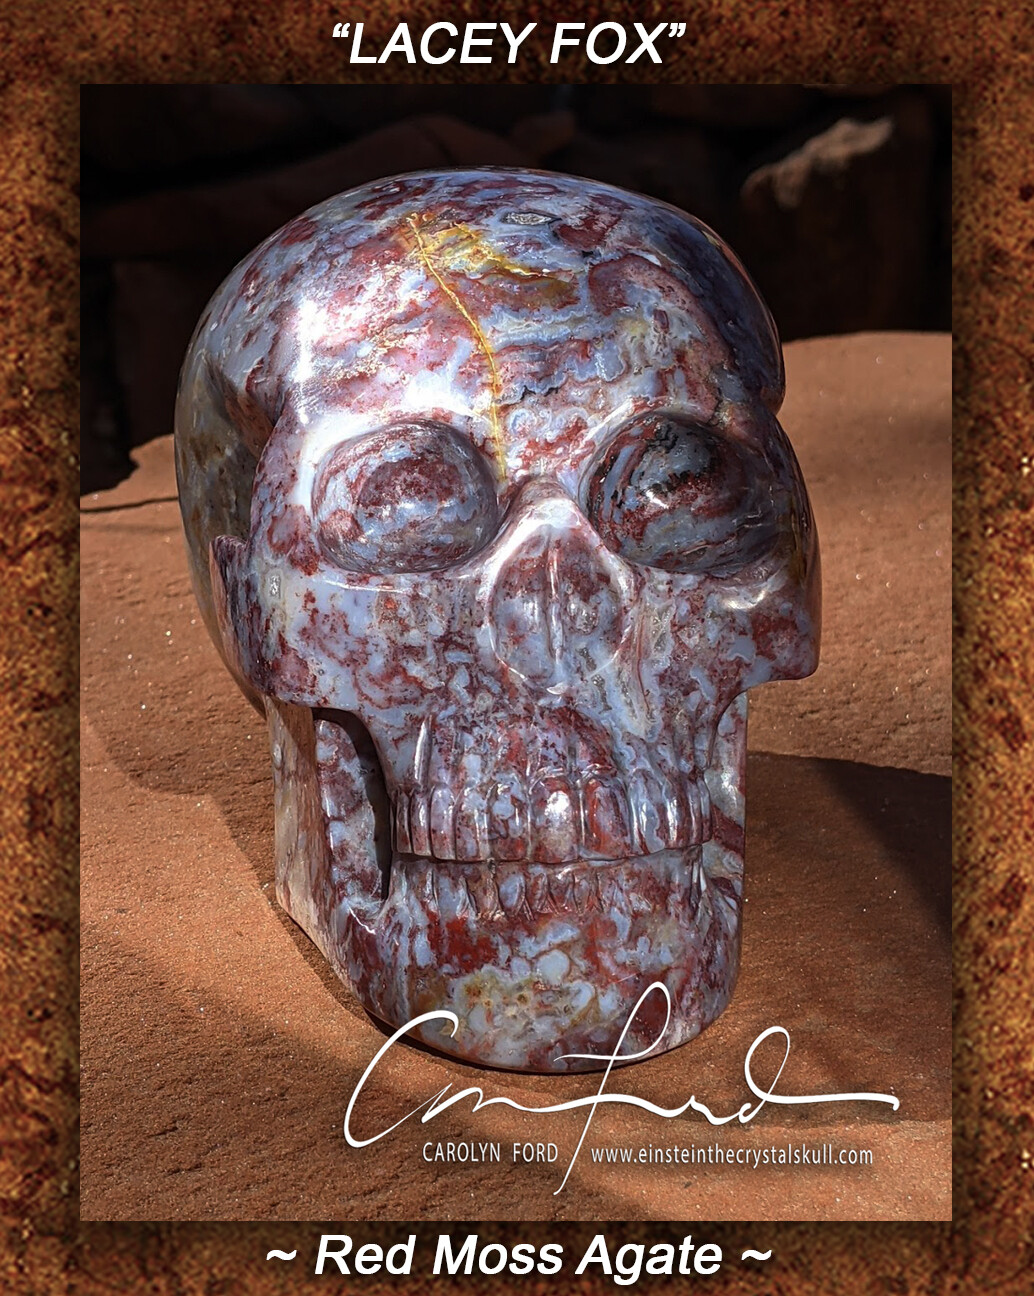 Red Moss Agate Skull,  Einstein the Ancient Crystal  Skull Imprinted